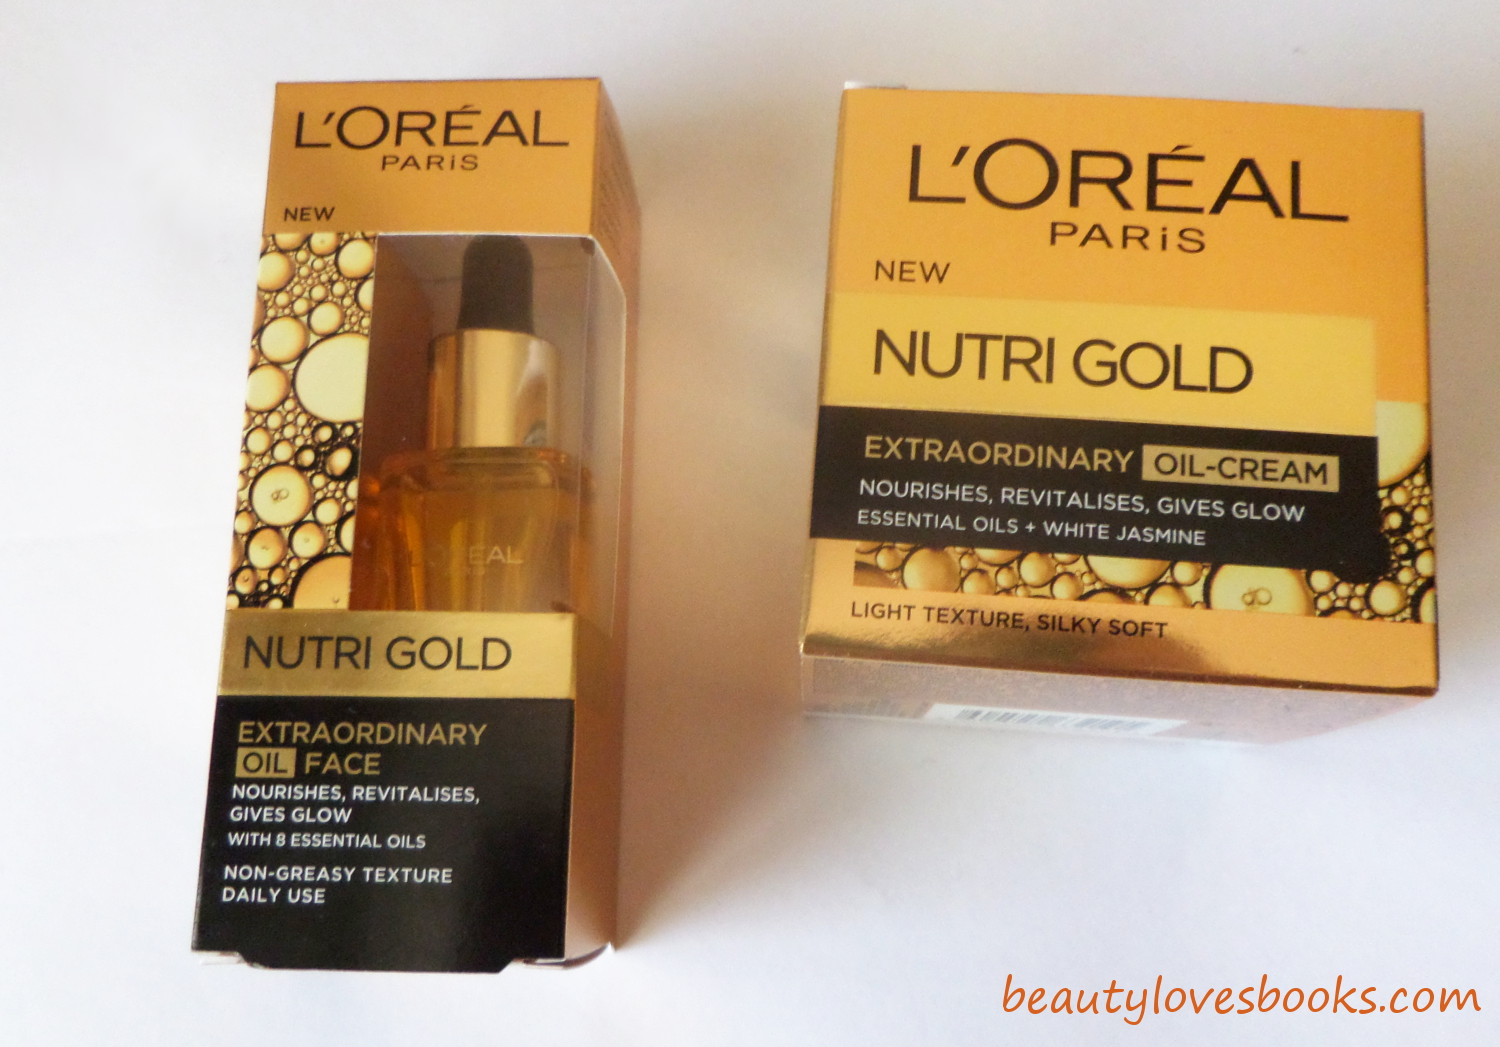 L'oreal Nutri Gold oil and oil-cream